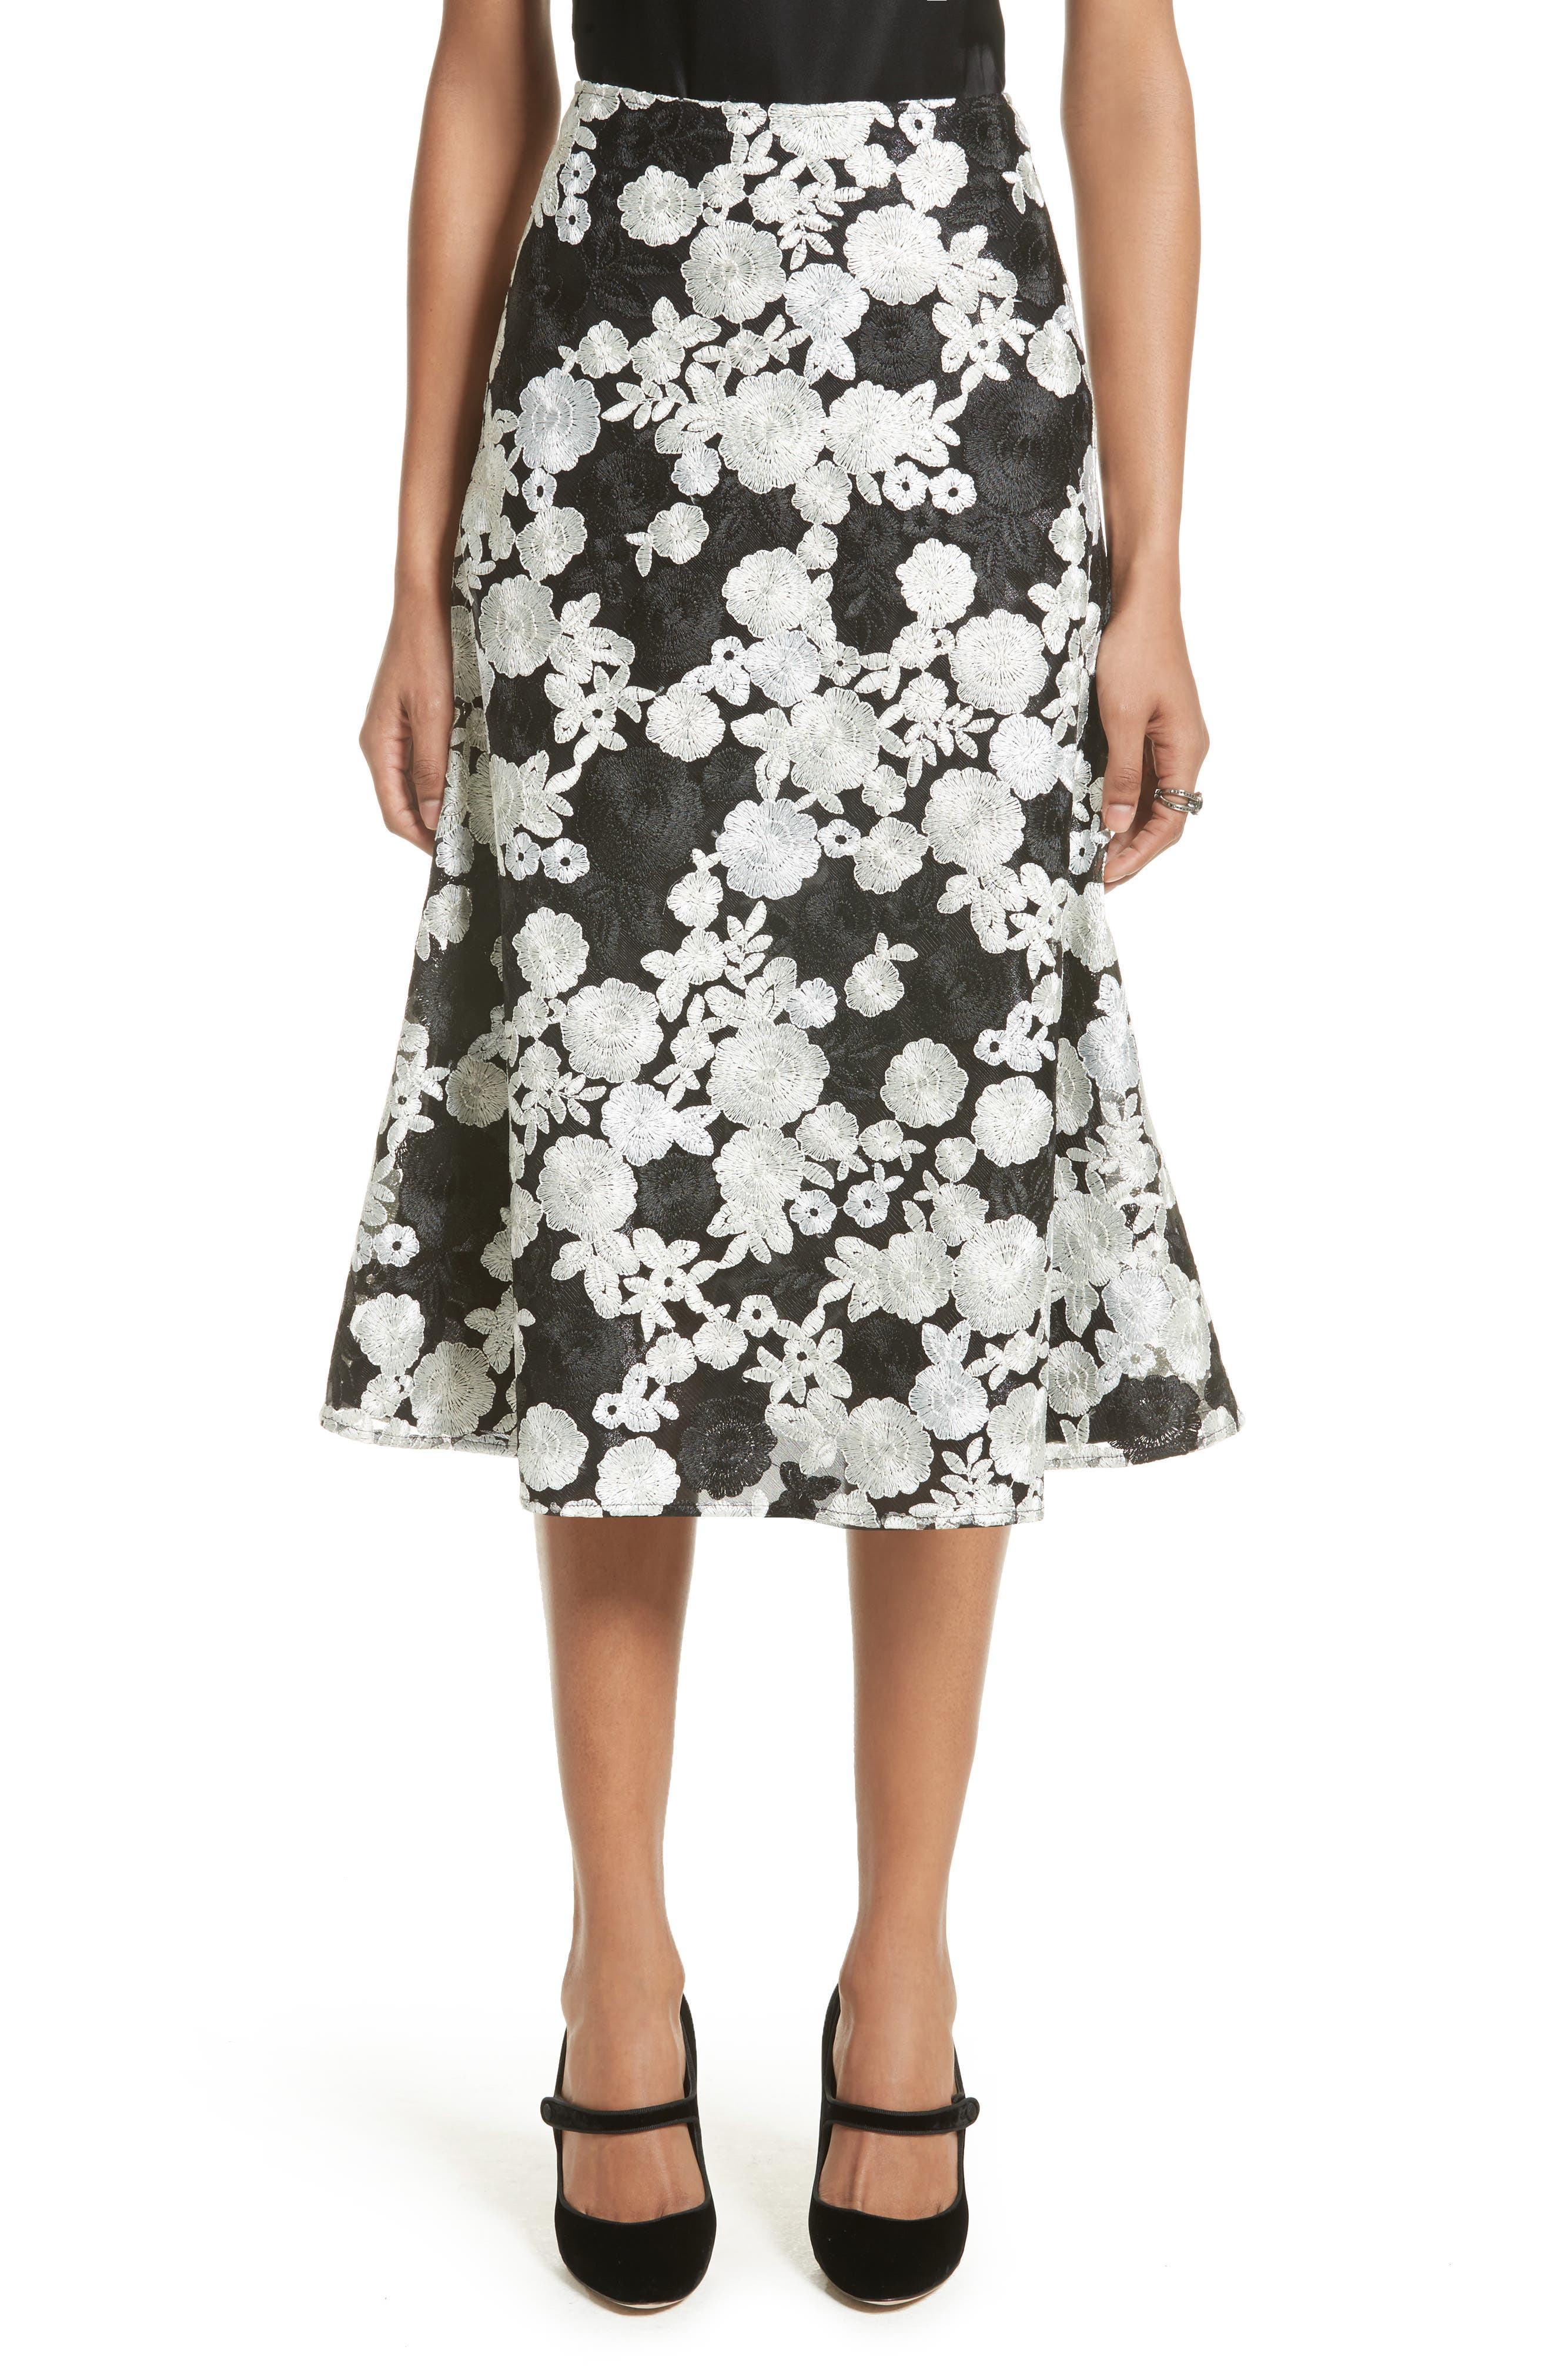 Alternate Image 1 Selected - St. John Floral Embroidered Flared Skirt